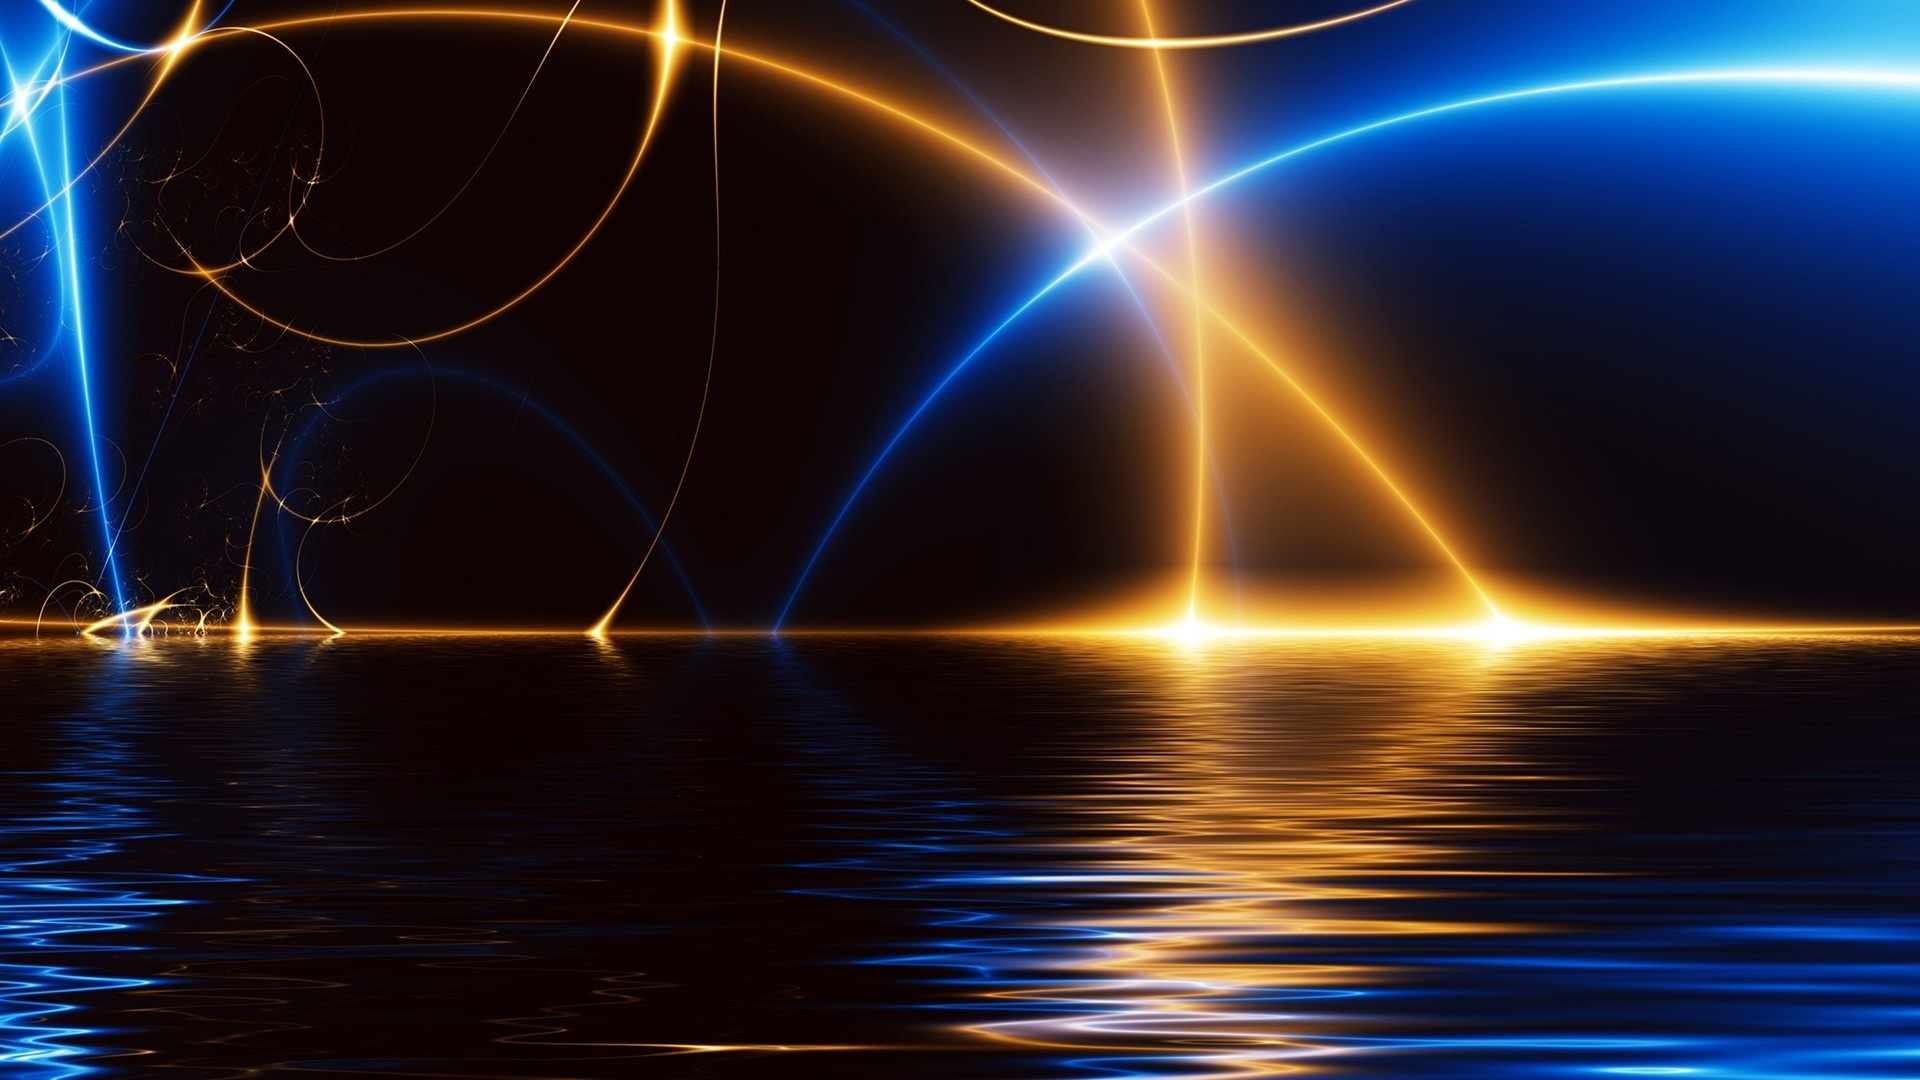 Abstract lines of light wallpaper - 1920x1080